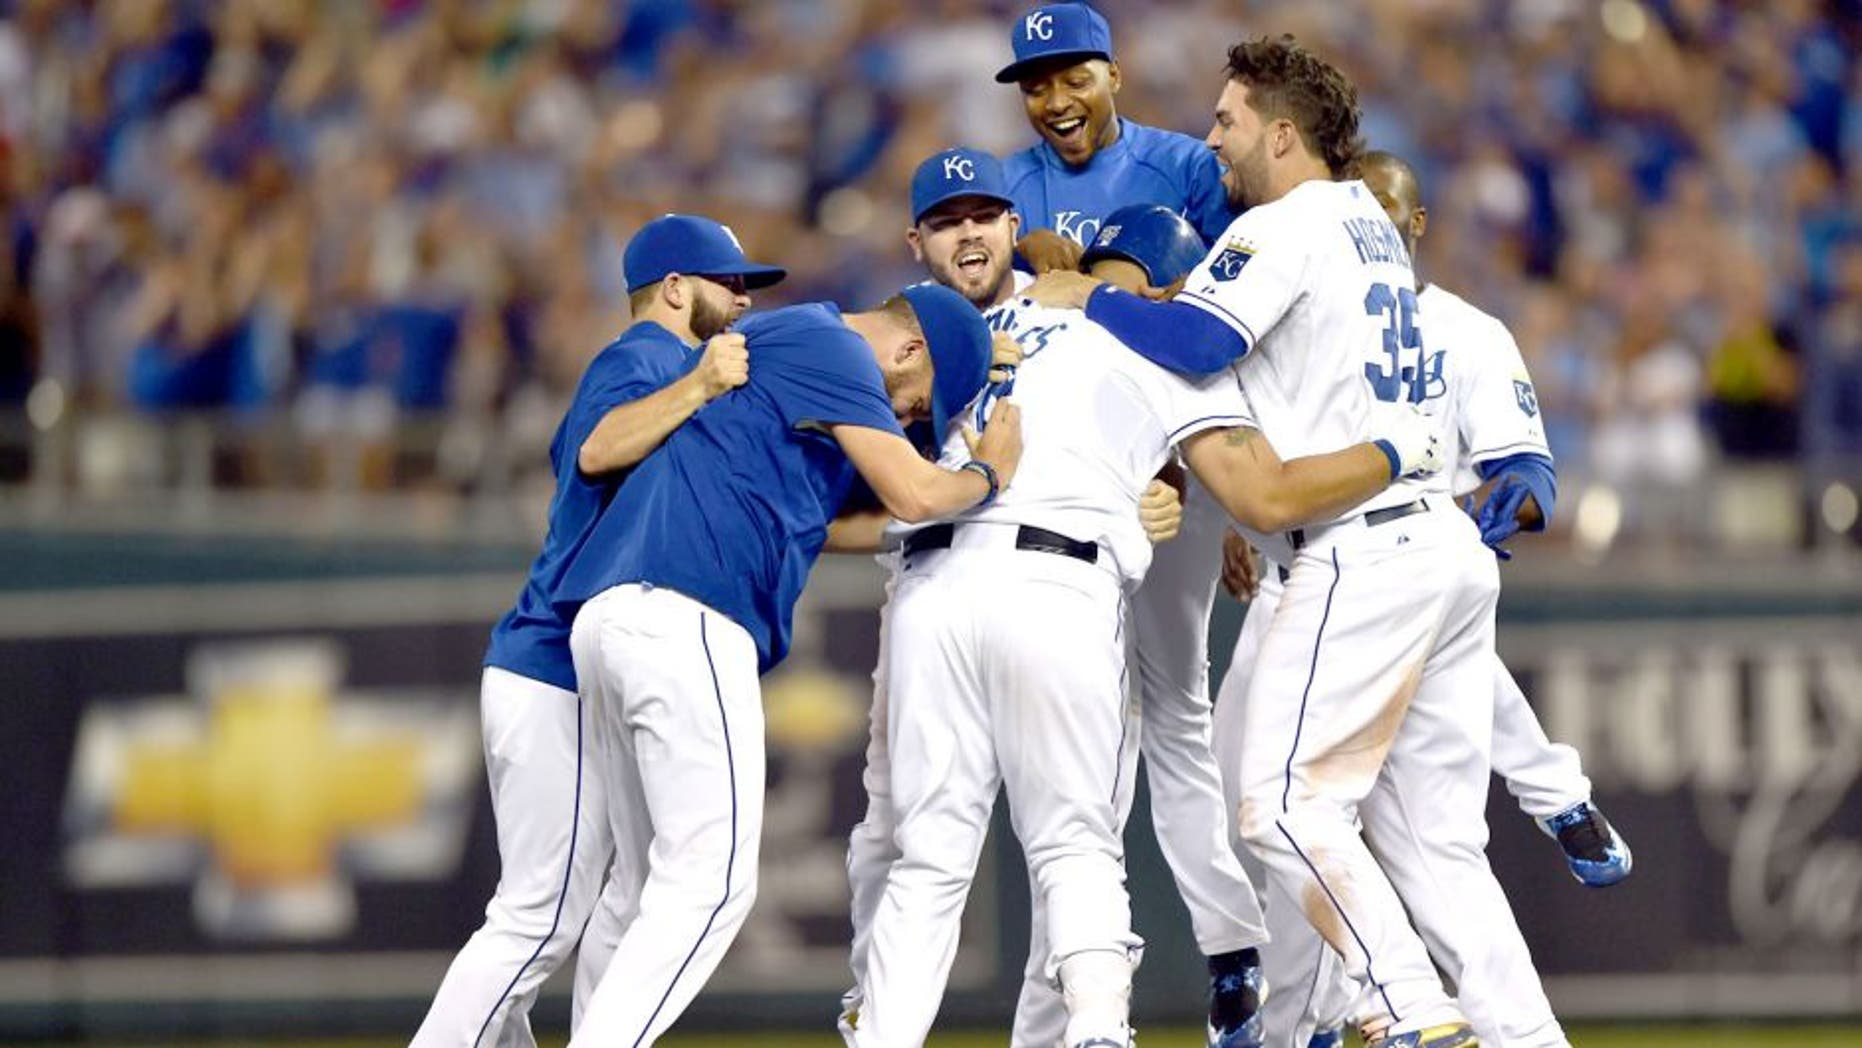 Aug 16, 2015; Kansas City, MO, USA; Kansas City Royals players celebrate after Kendrys Morales (center) hit a walk off single against the Los Angeles Angels during the tenth inning at Kauffman Stadium. Mandatory Credit: Peter G. Aiken-USA TODAY Sports